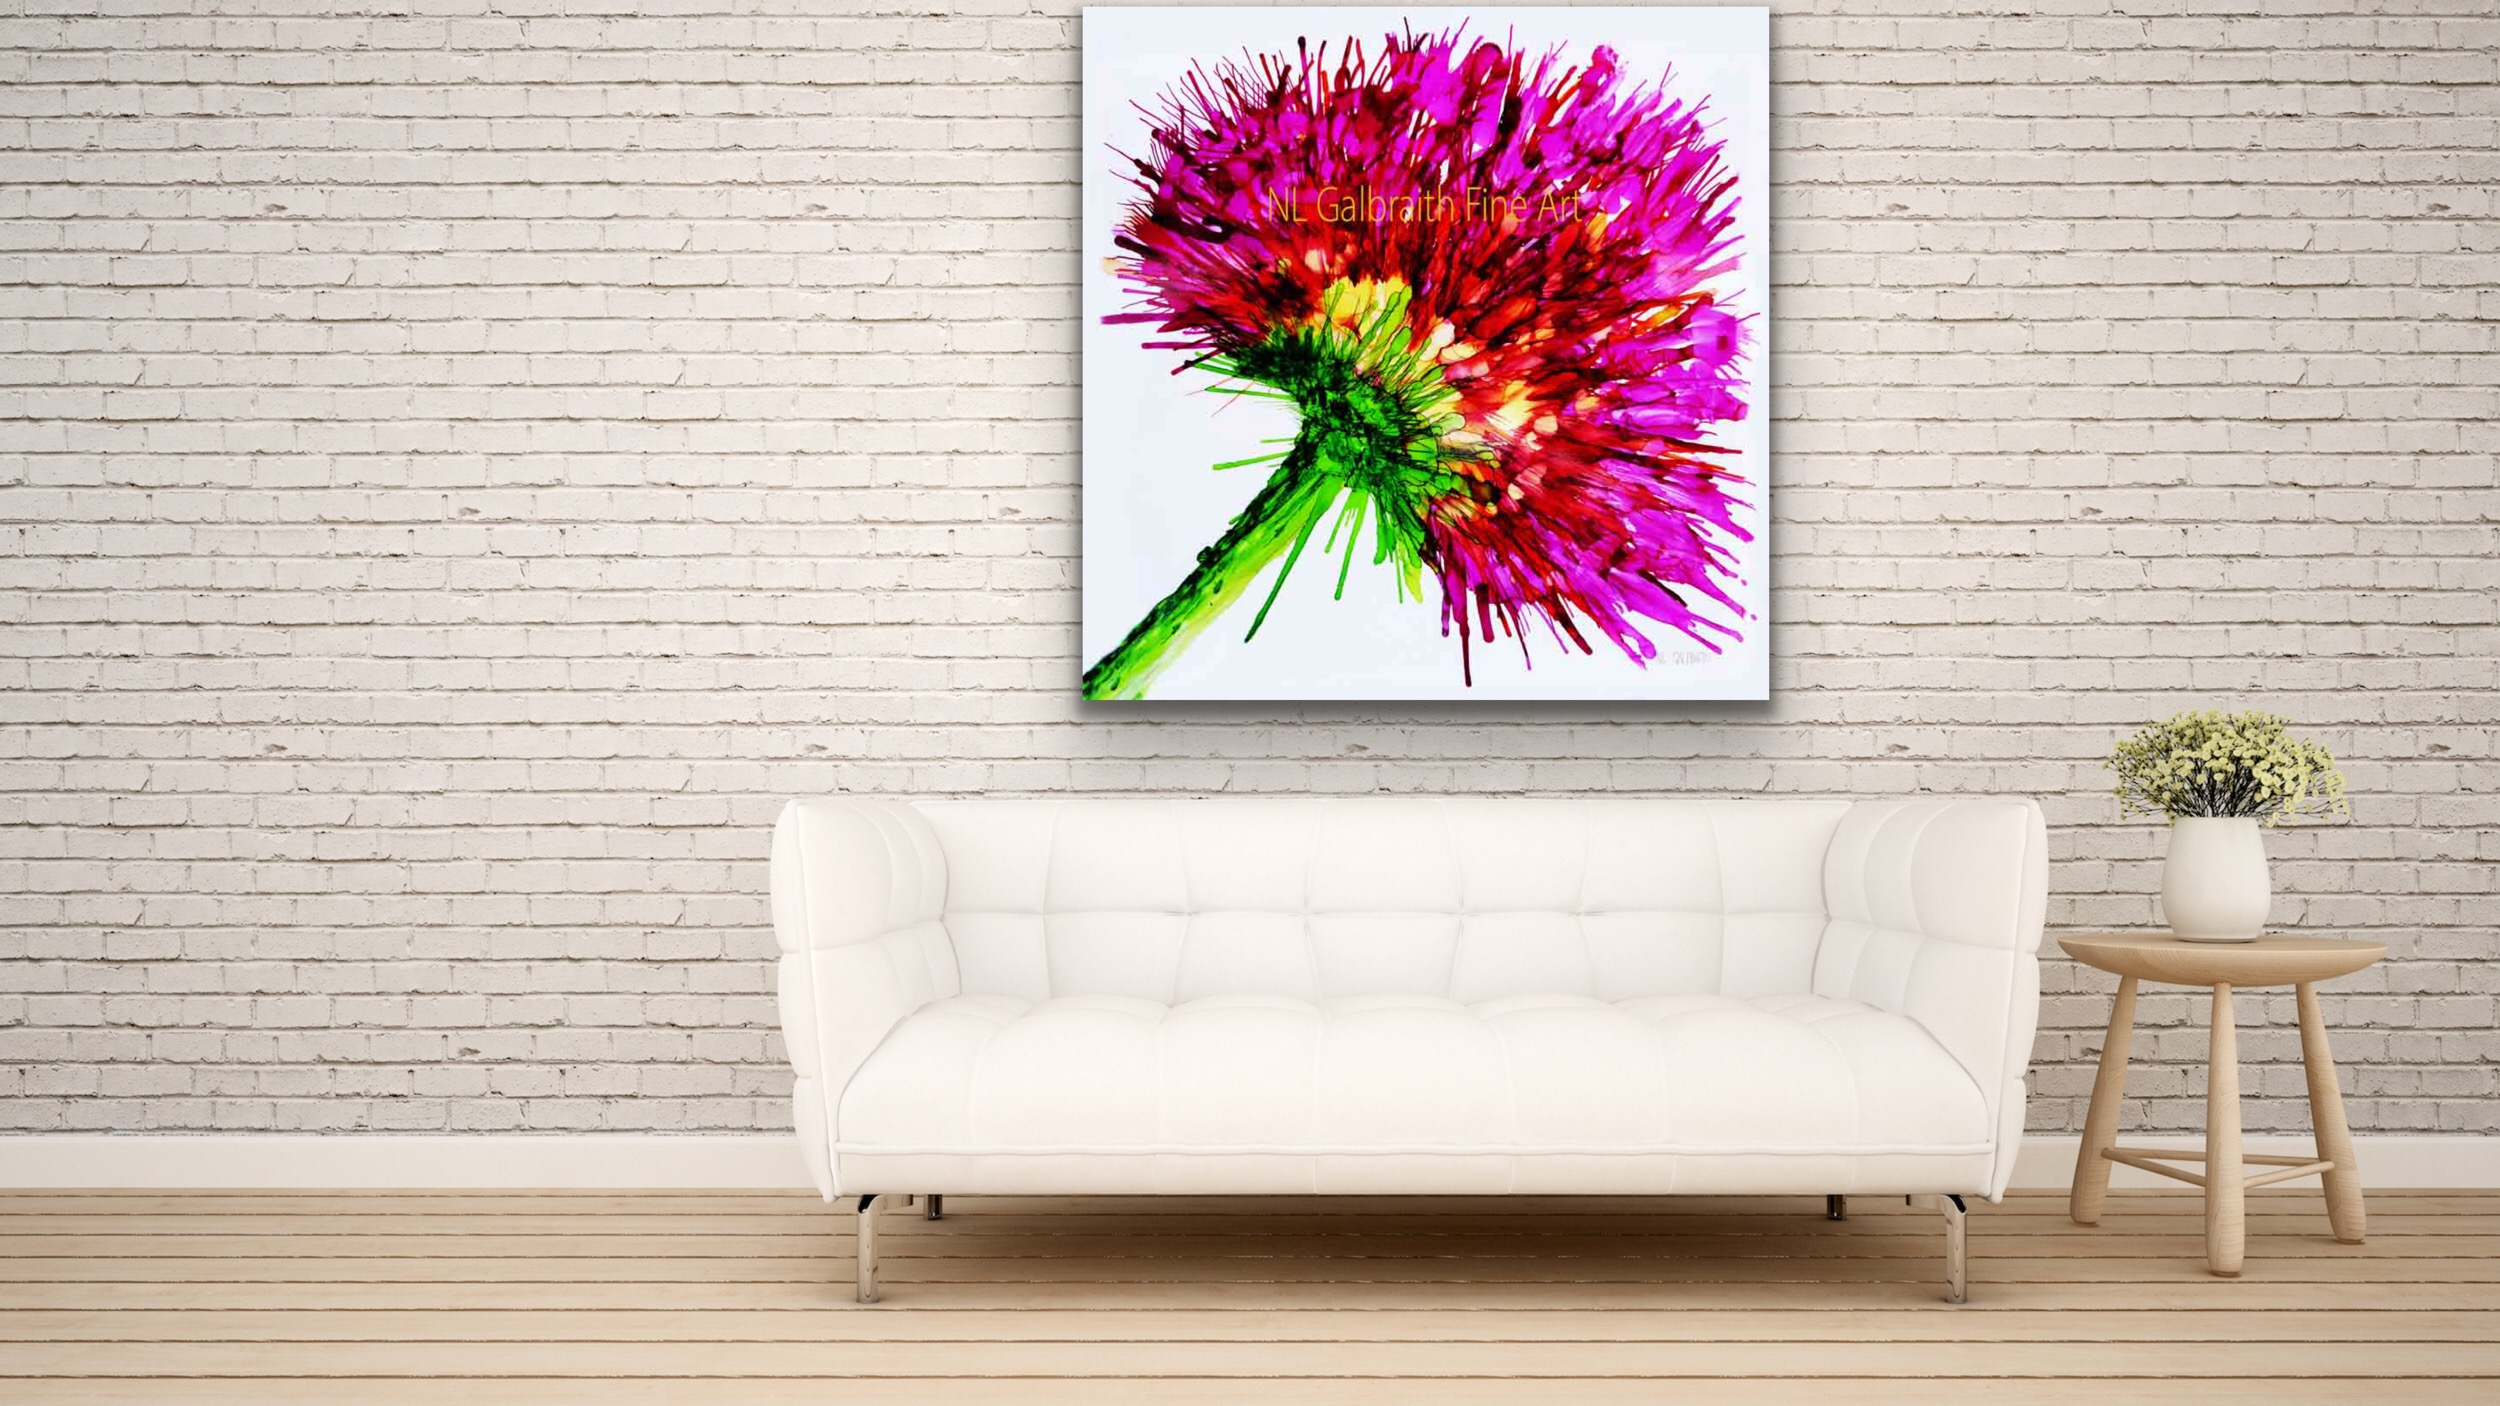 Oversized Pink Flower Graphic on a White Brick Wall Over a Sofa